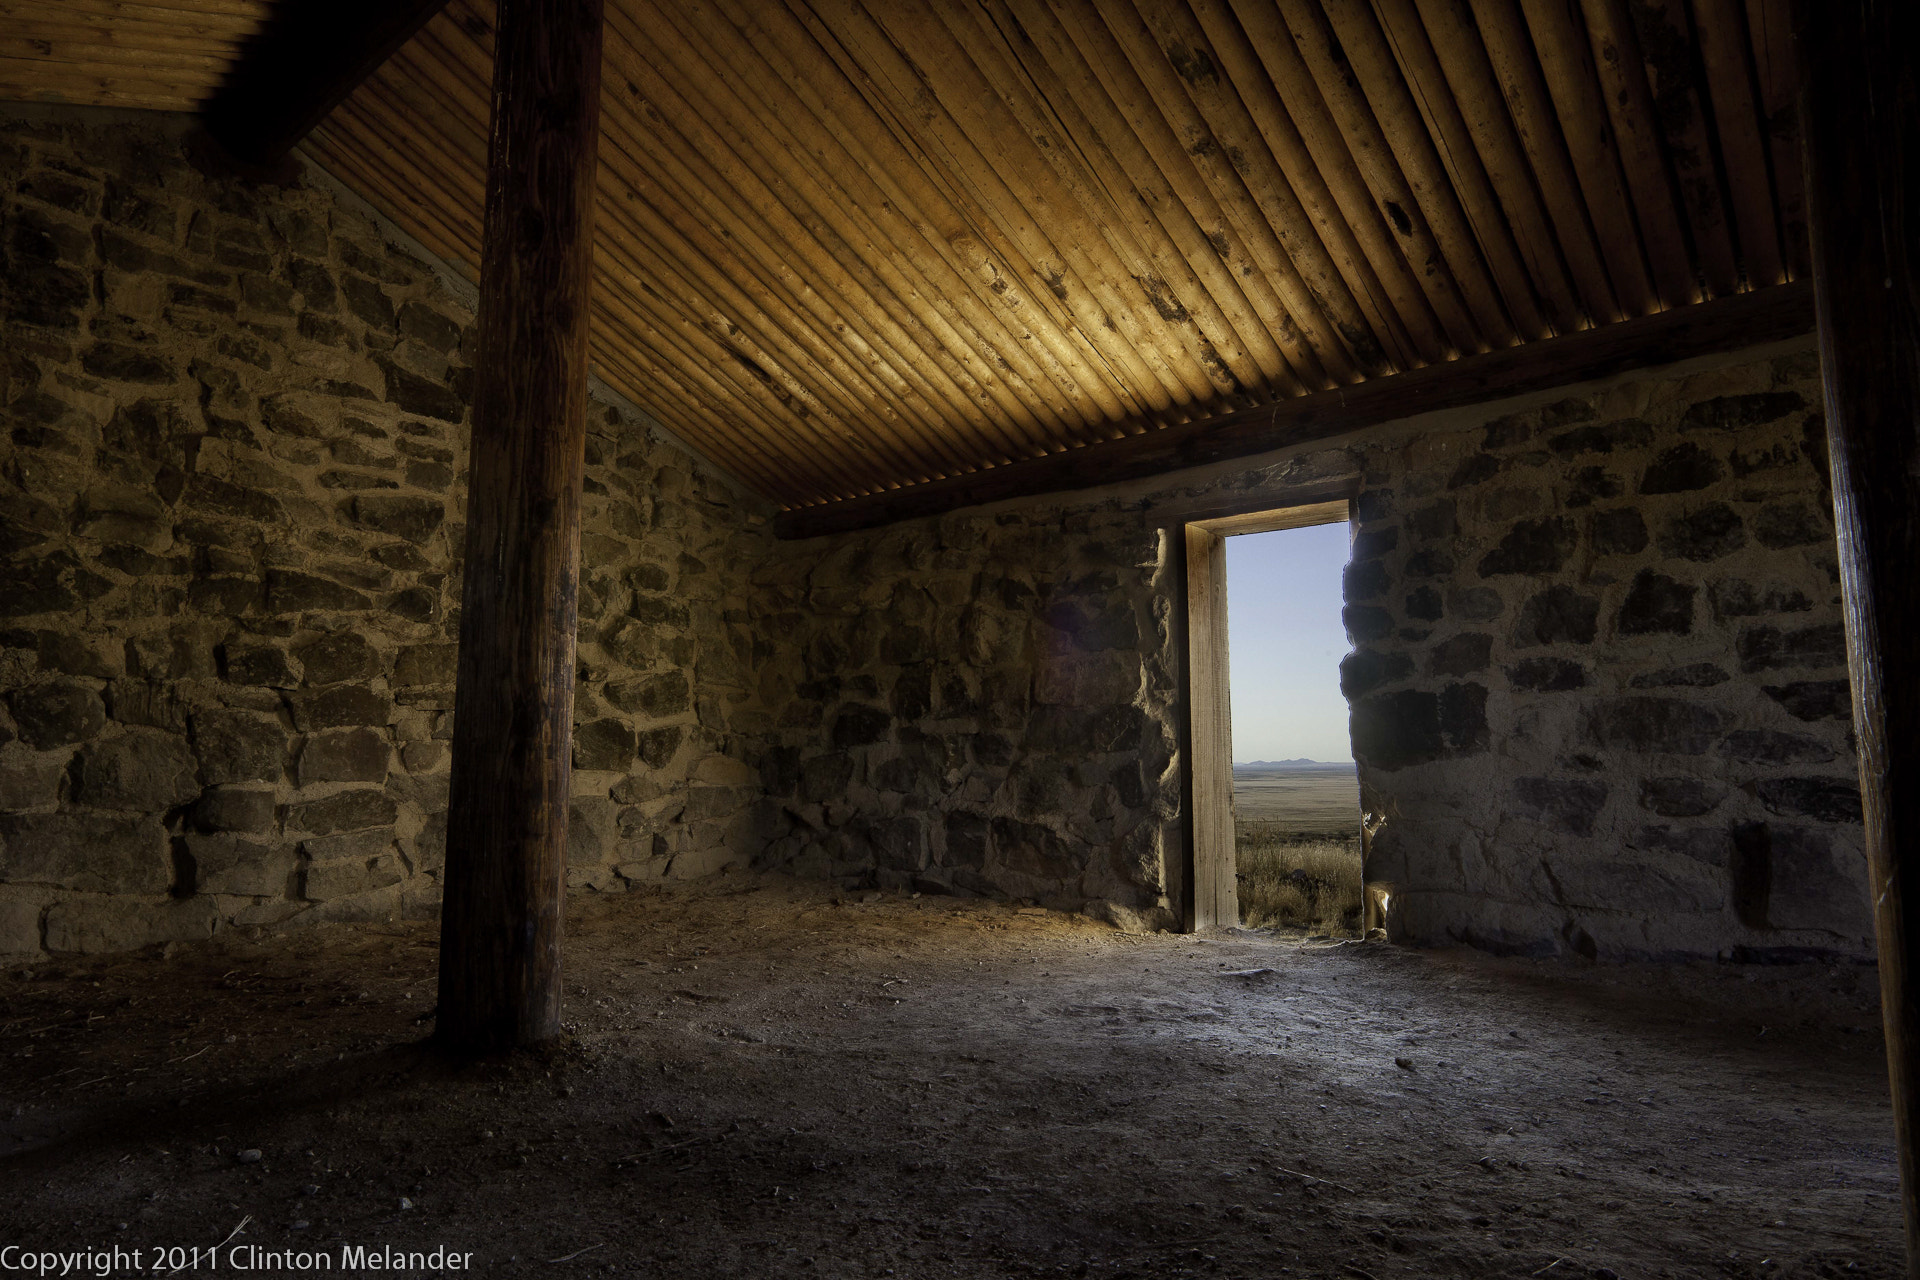 Photograph Pony Express cabin HDR inside by Clinton Melander on 500px